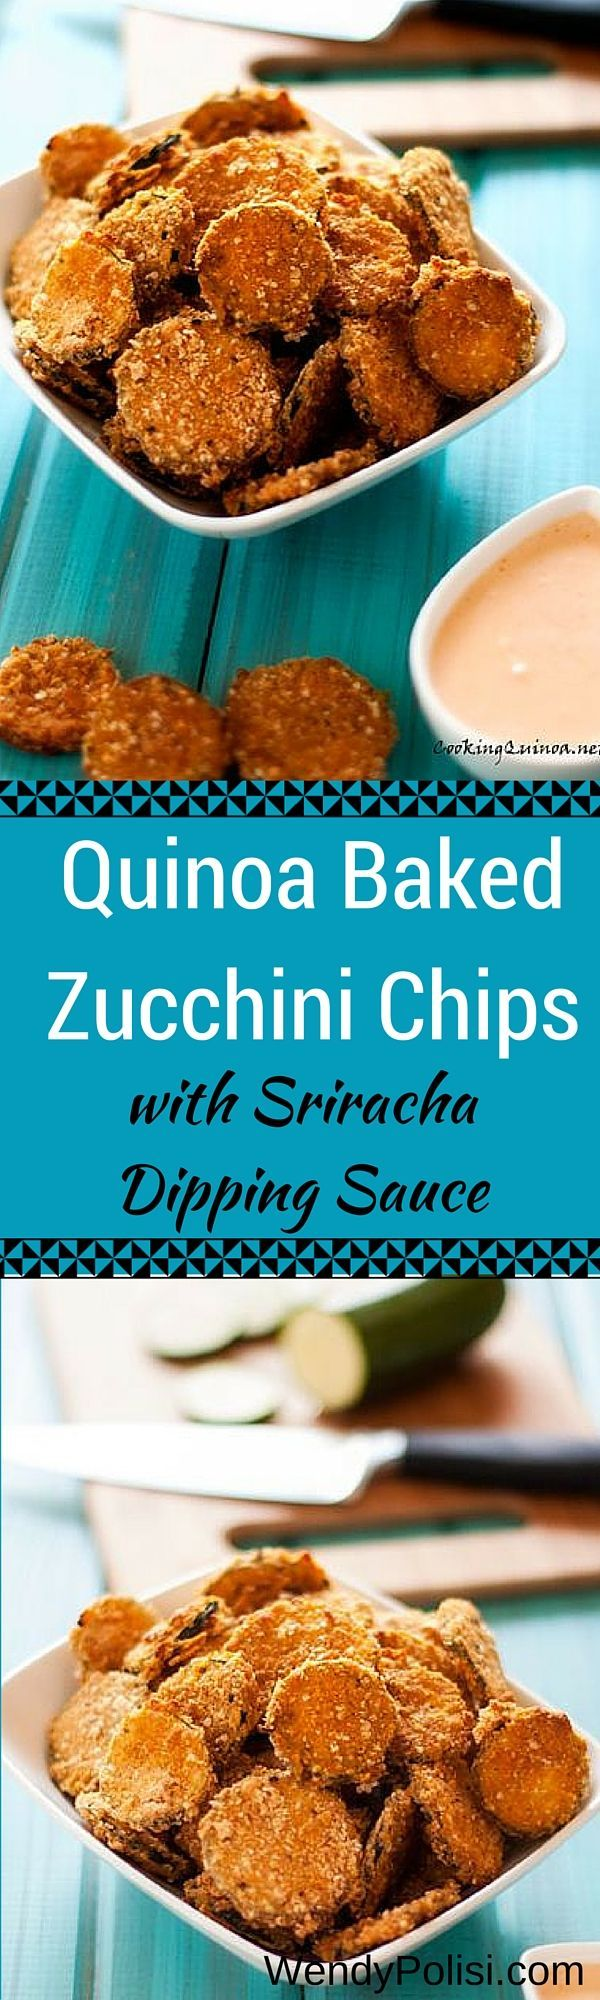 Quinoa Baked Zucchini Chips with Sriracha Dipping Sauce - These gluten free and vegan zucchini chips are a healthier alternative to fried zucchini chips!  Crispy and so good. -- WendyPolisi.com